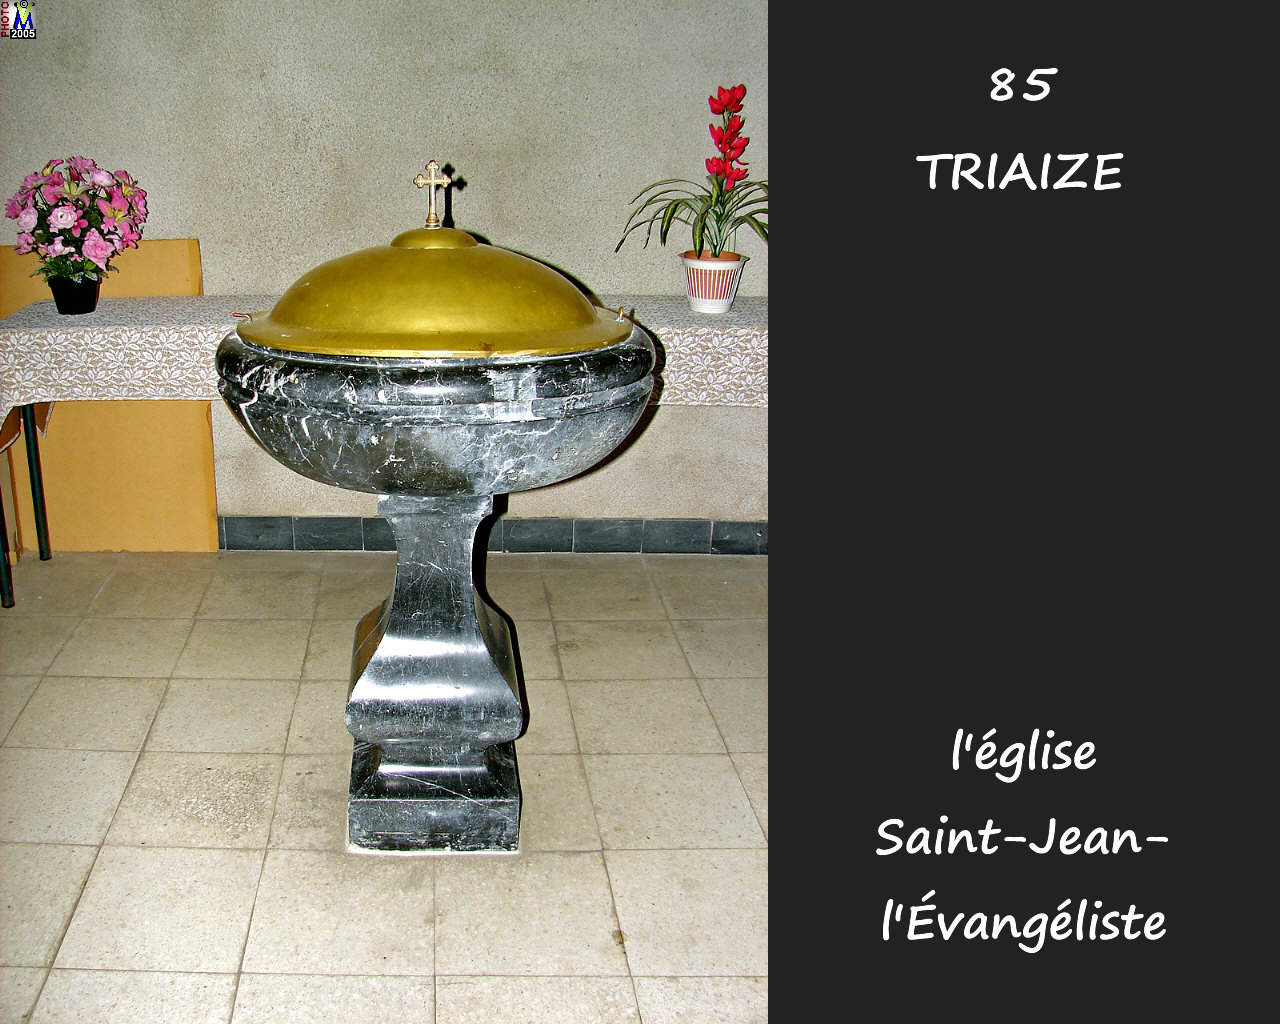 85TRIAIZE_eglise_218.jpg